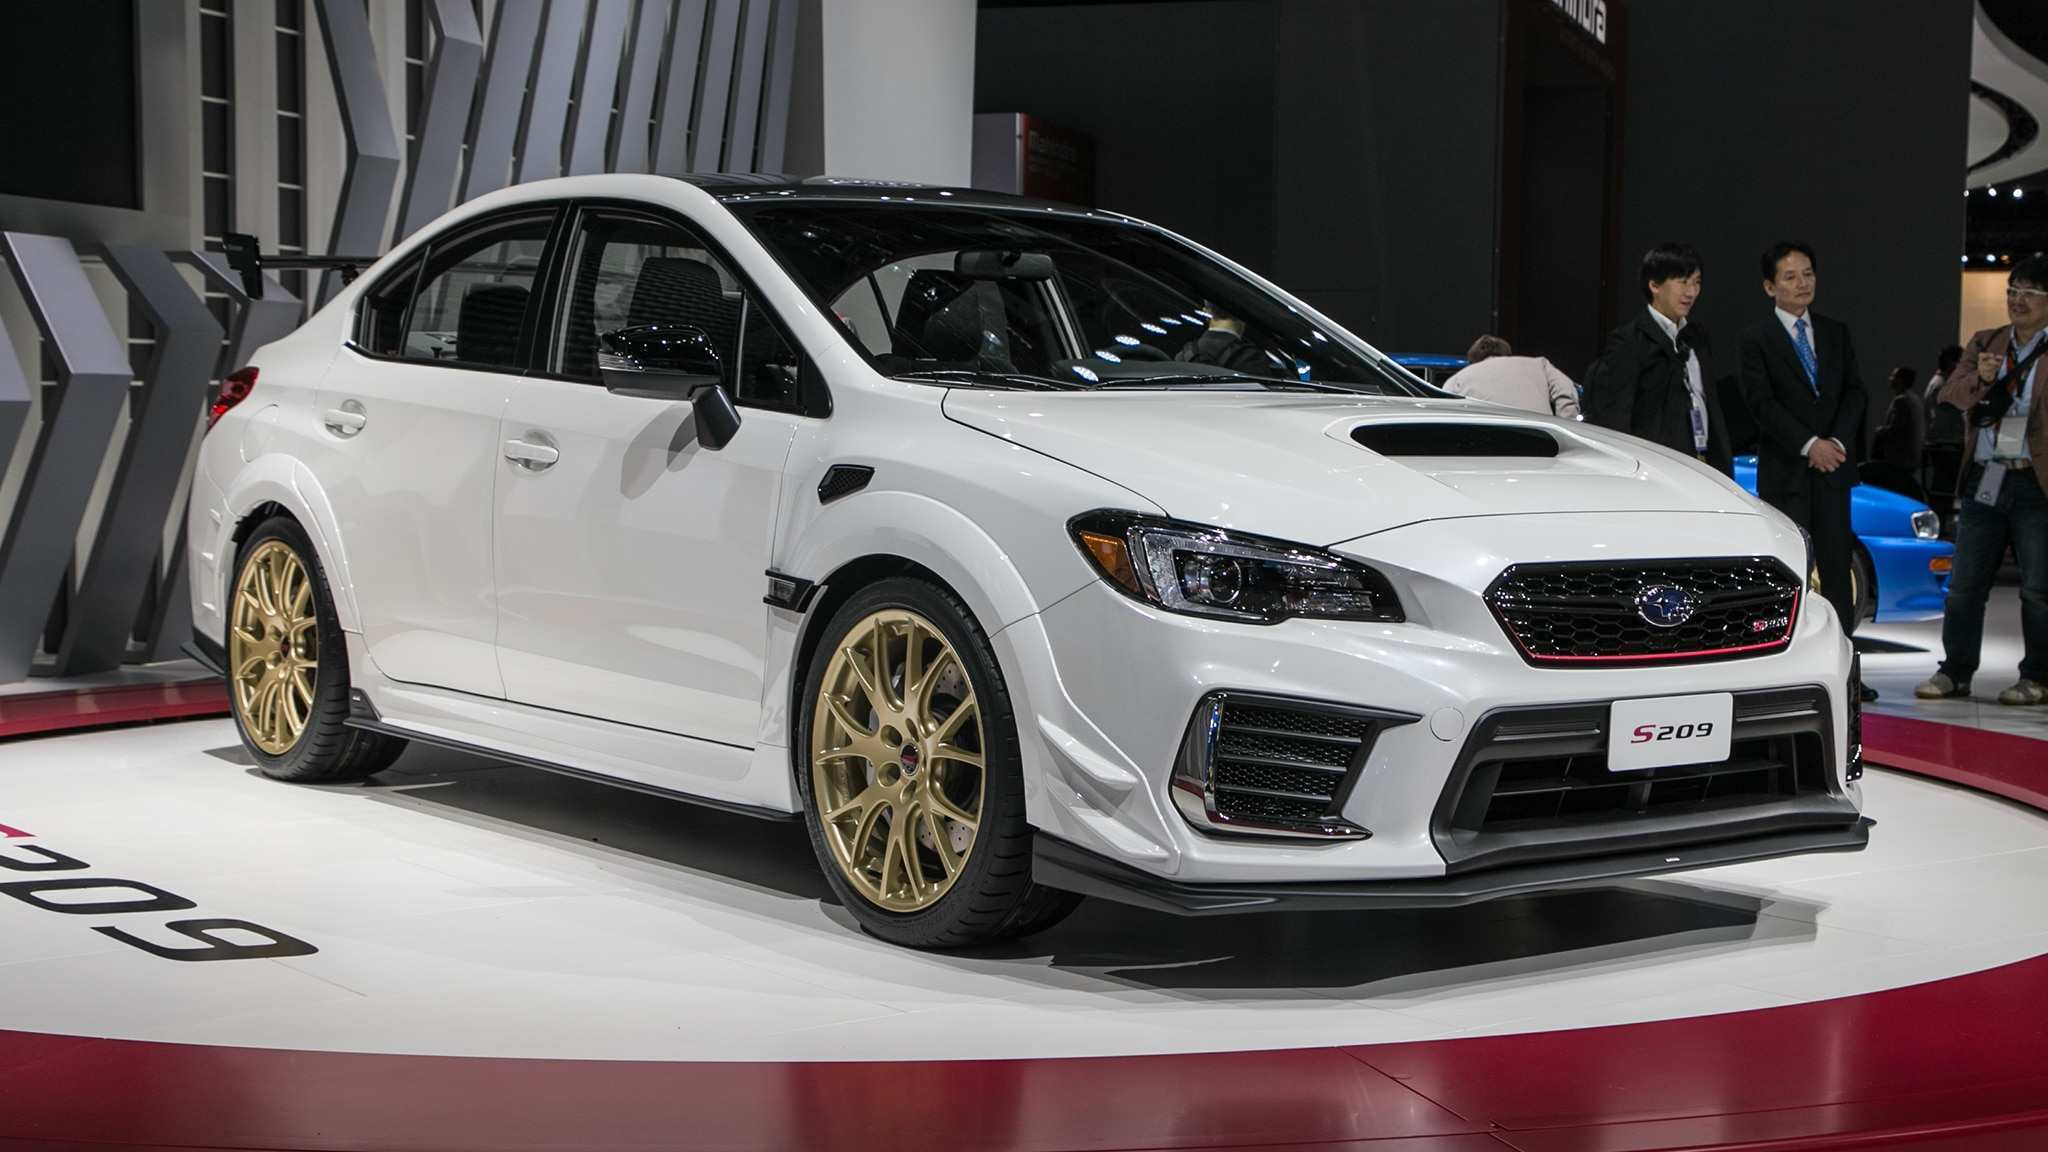 65 The 2019 Subaru Impreza Wrx Research New with 2019 Subaru Impreza Wrx